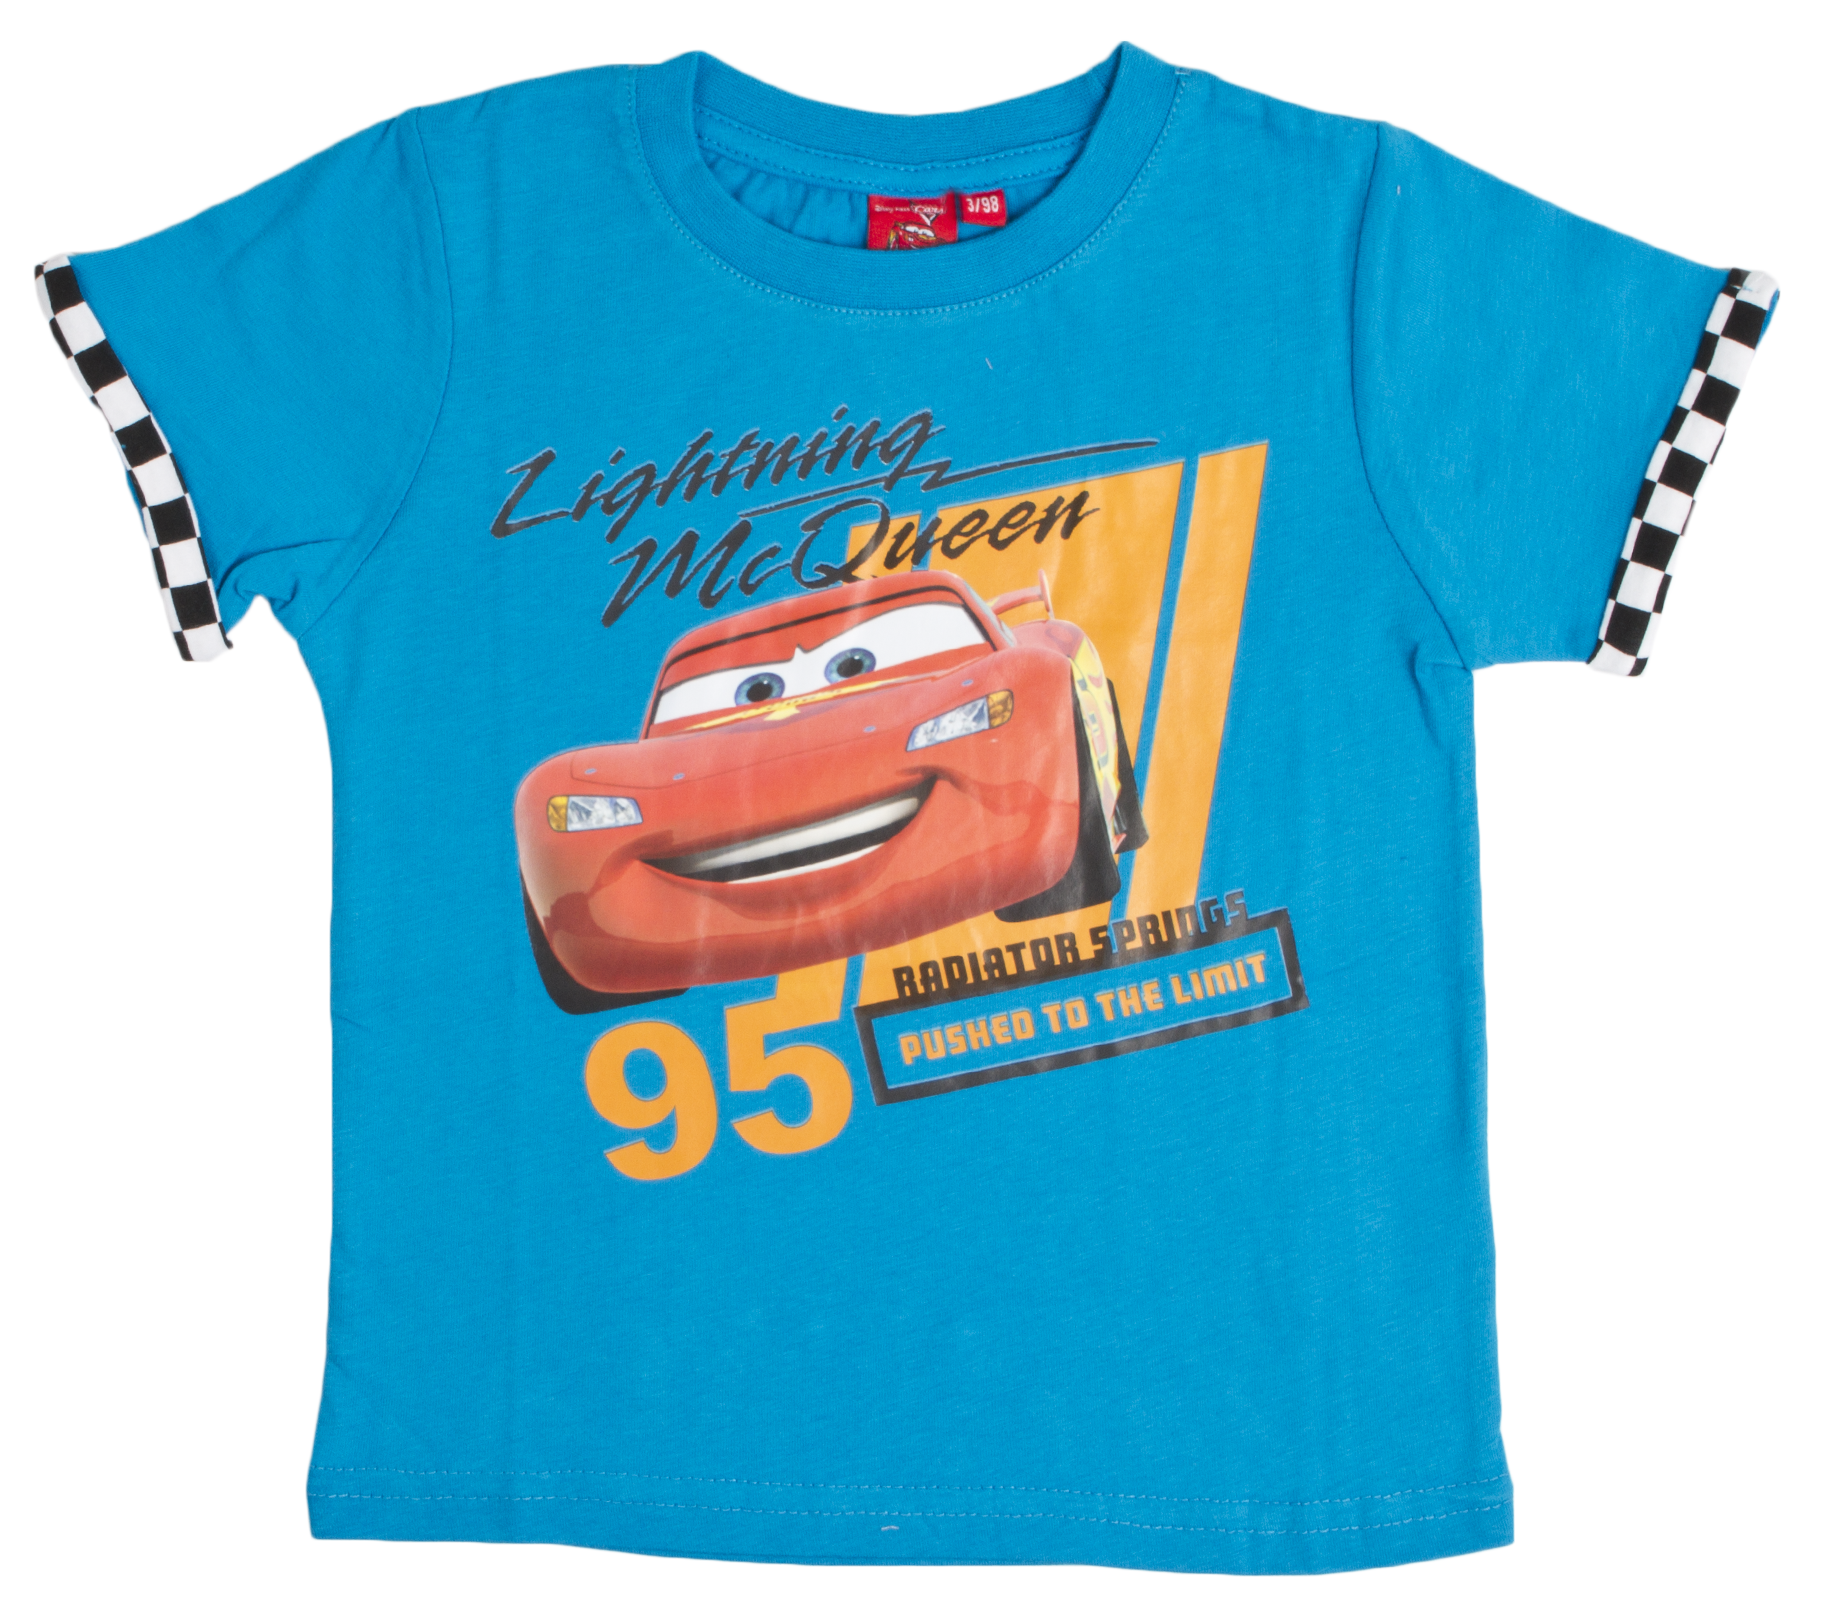 Disney Boys' Graphic T-Shirt - Ninjas Don't Do Homework. Sold by Sears. $ $ Disney Cars Toddler Boys' T-Shirt - Lightning McQueen. Sold by Sears. $ $ Disney Toddler Boys' Graphic T-Shirt - Mickey Mouse. Sold by Kmart. $ $ Disney Toddler Boys' Pajama T-Shirt & Shorts - Mickey & Friends.